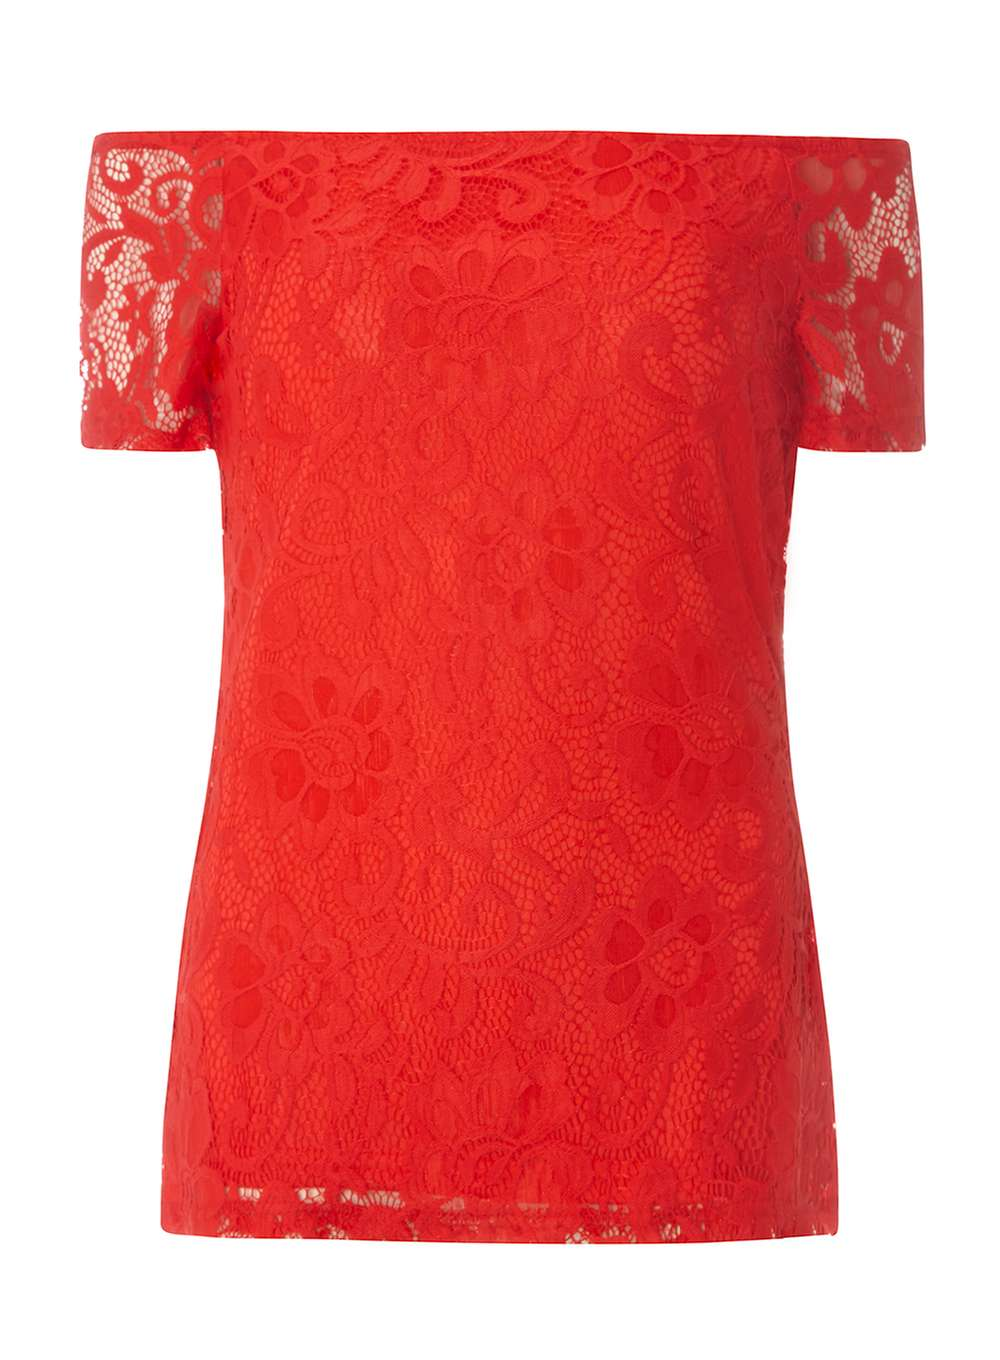 85456bf11f4 **Tall Red Lace Bardot Top. From Dorothy Perkins